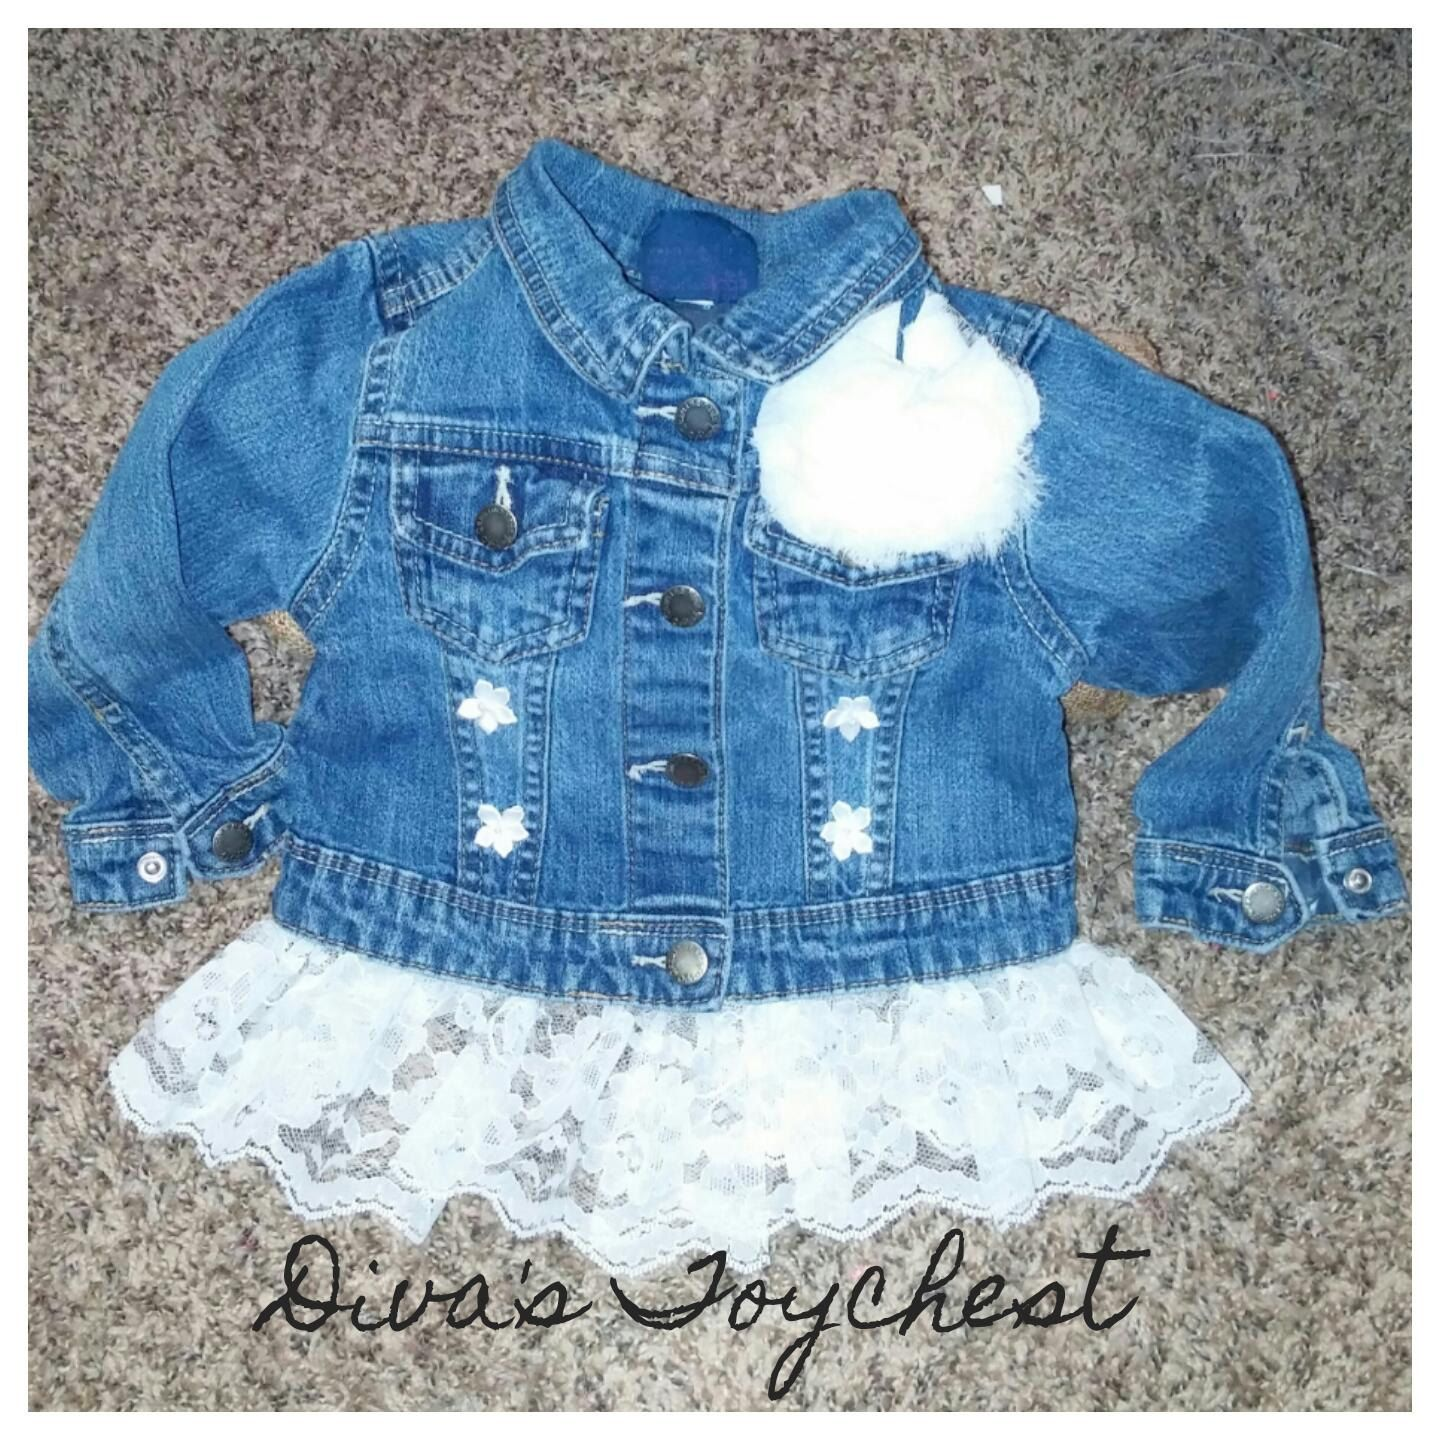 6c49b1384f0a Girls 2T Jean Jacket-one of a kind-upcycled denim- 29.99 by Diva s ...